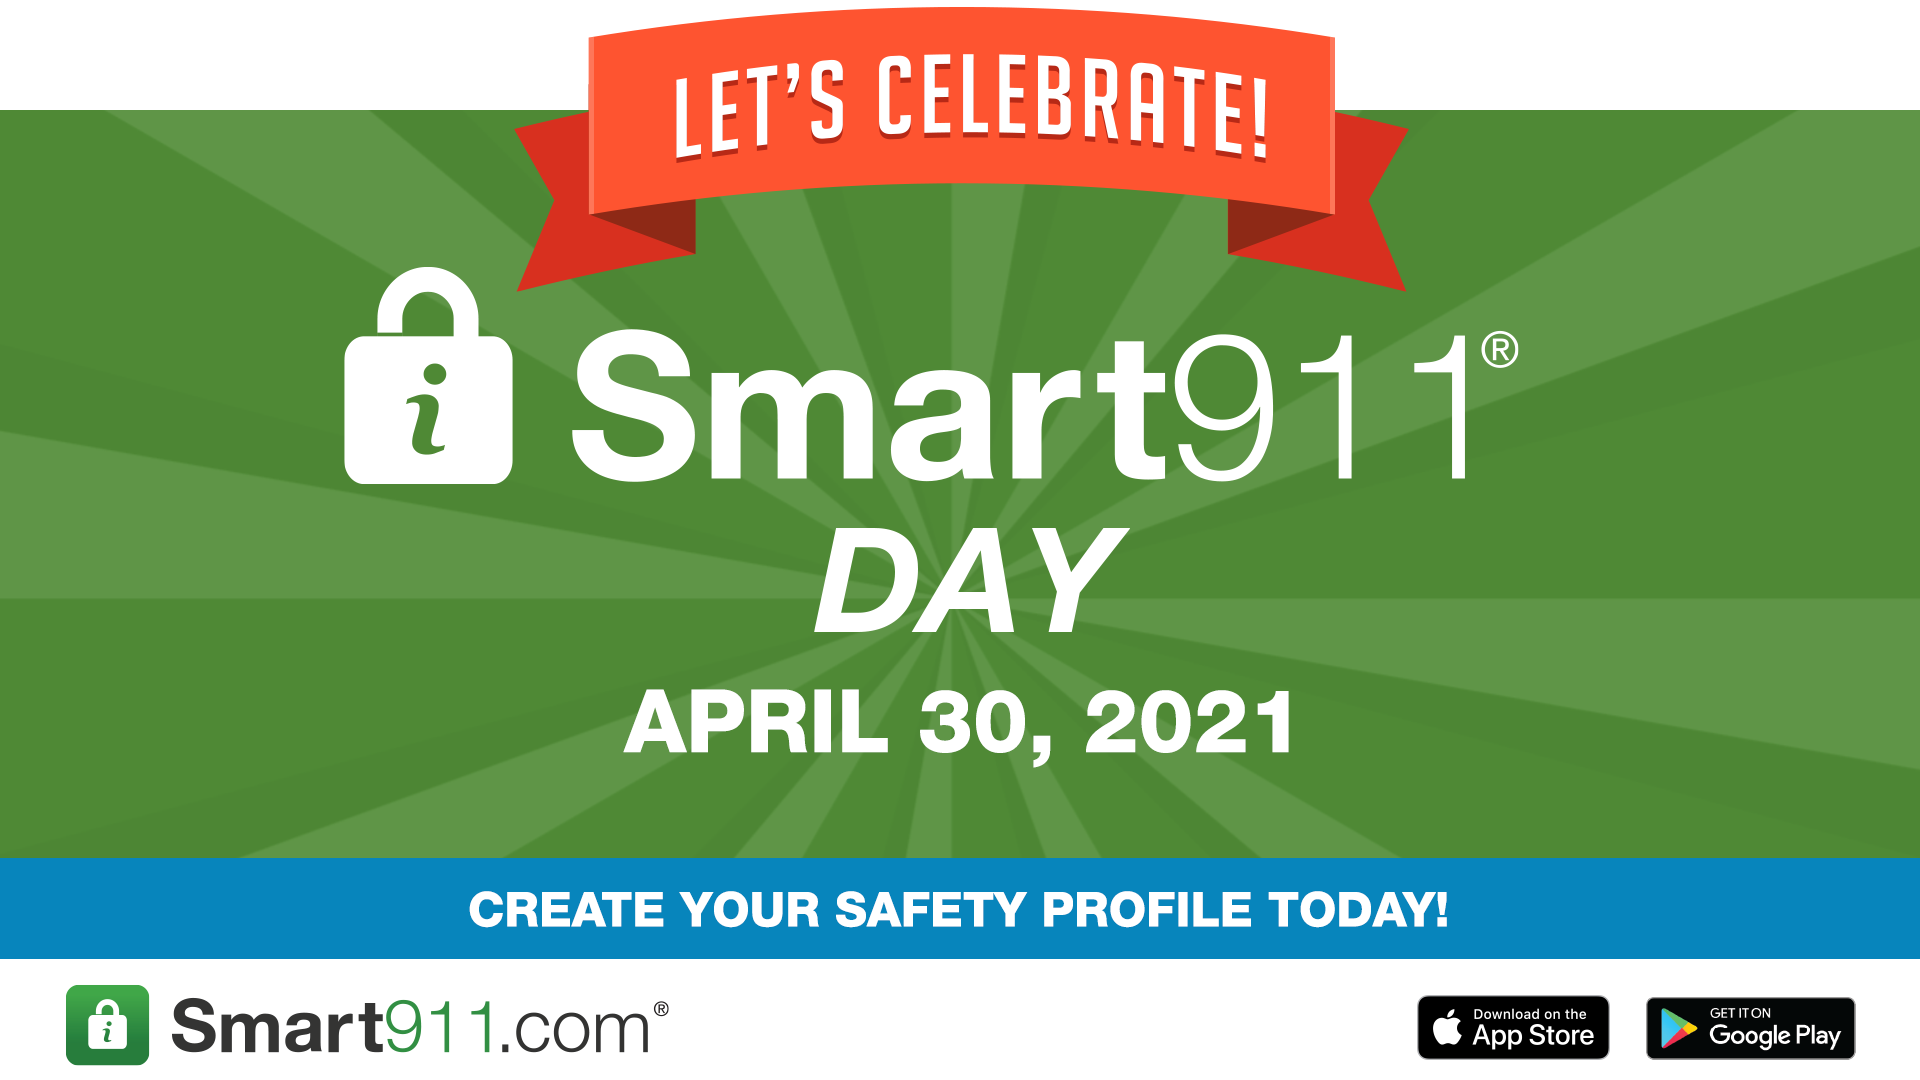 Join Charleston County Public Safety, CCPL in signing up for Smart911 next weekend